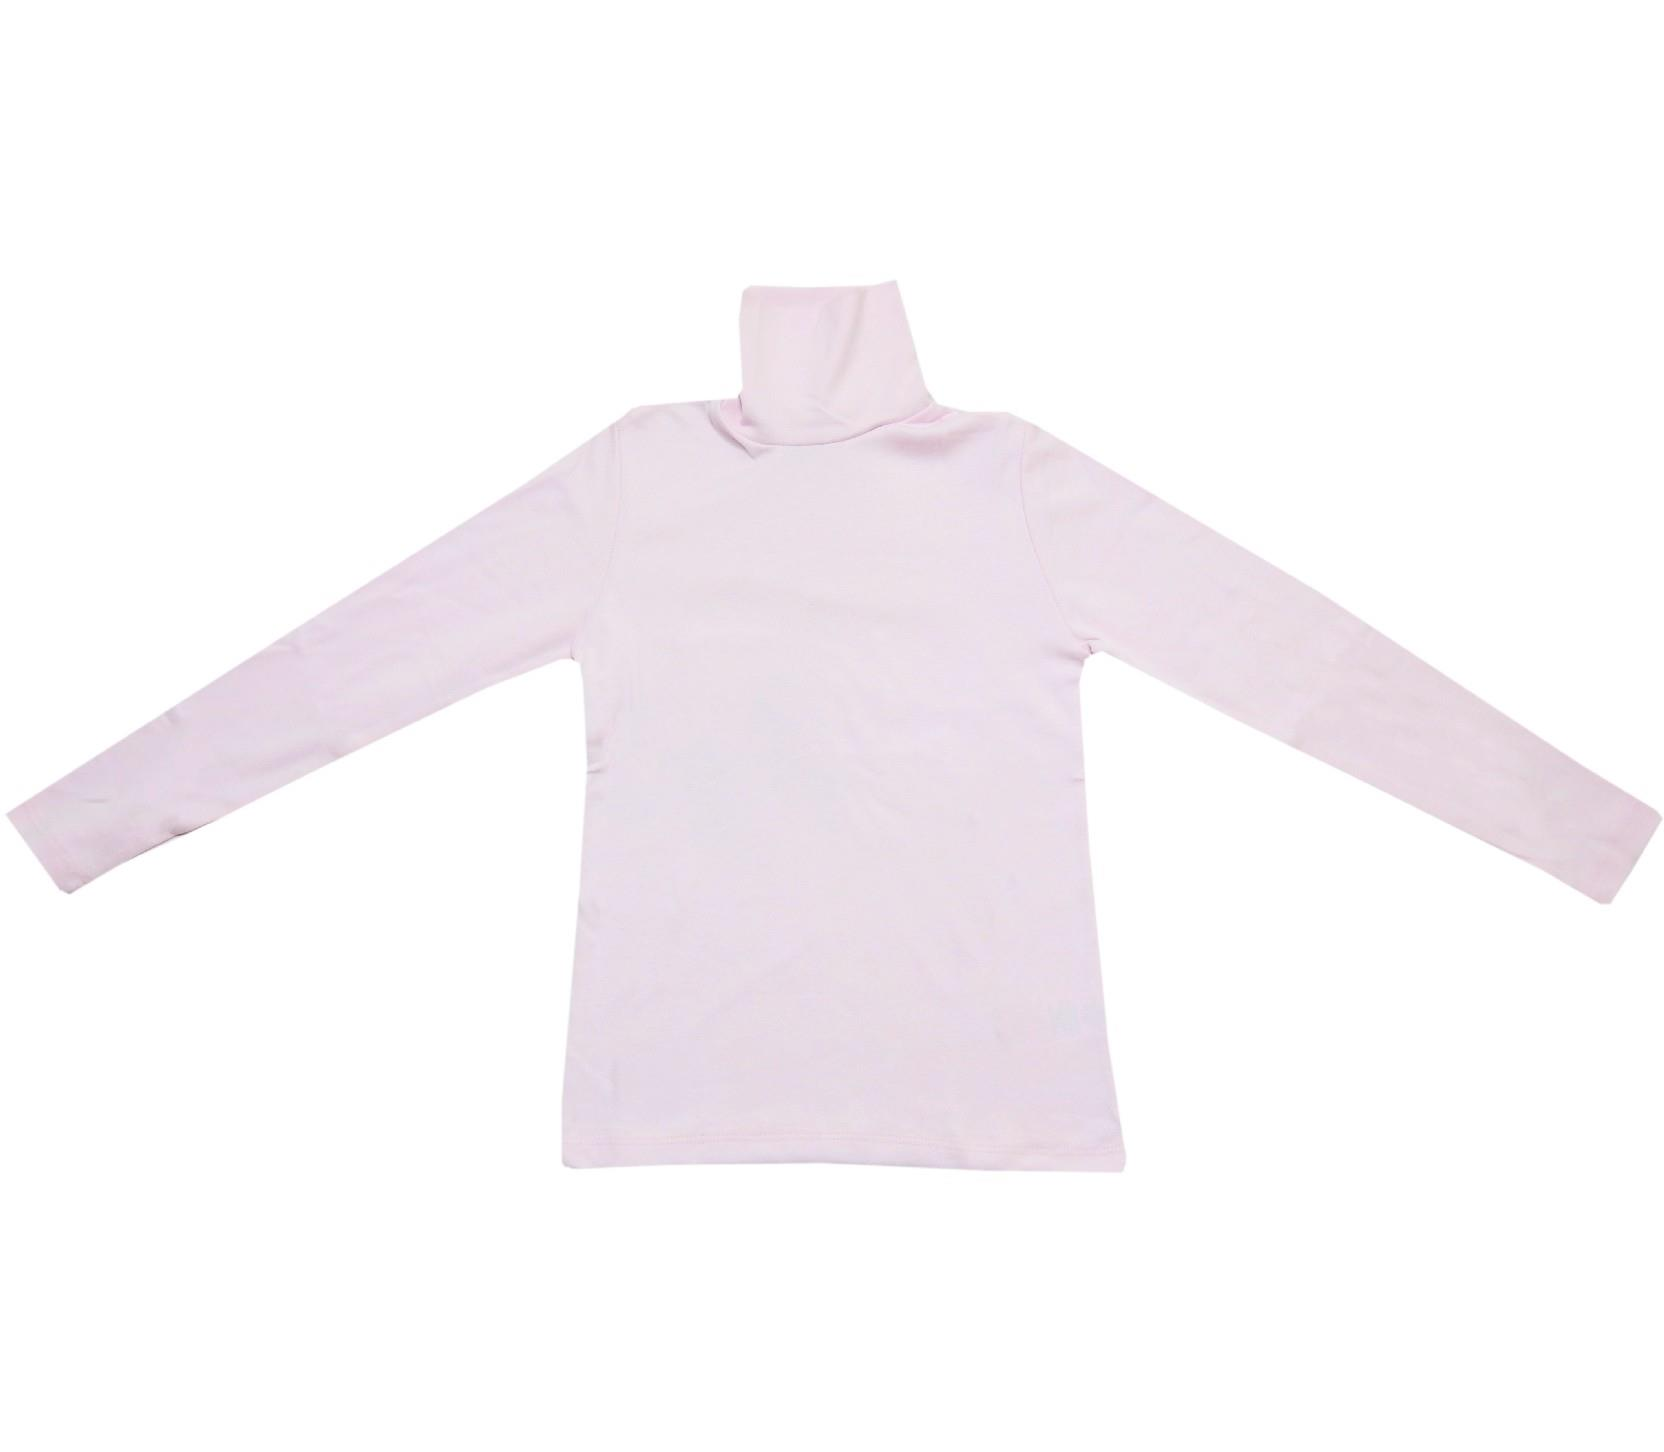 115 wholesale turtleneck sweater for kids (1-2-3-4 age)